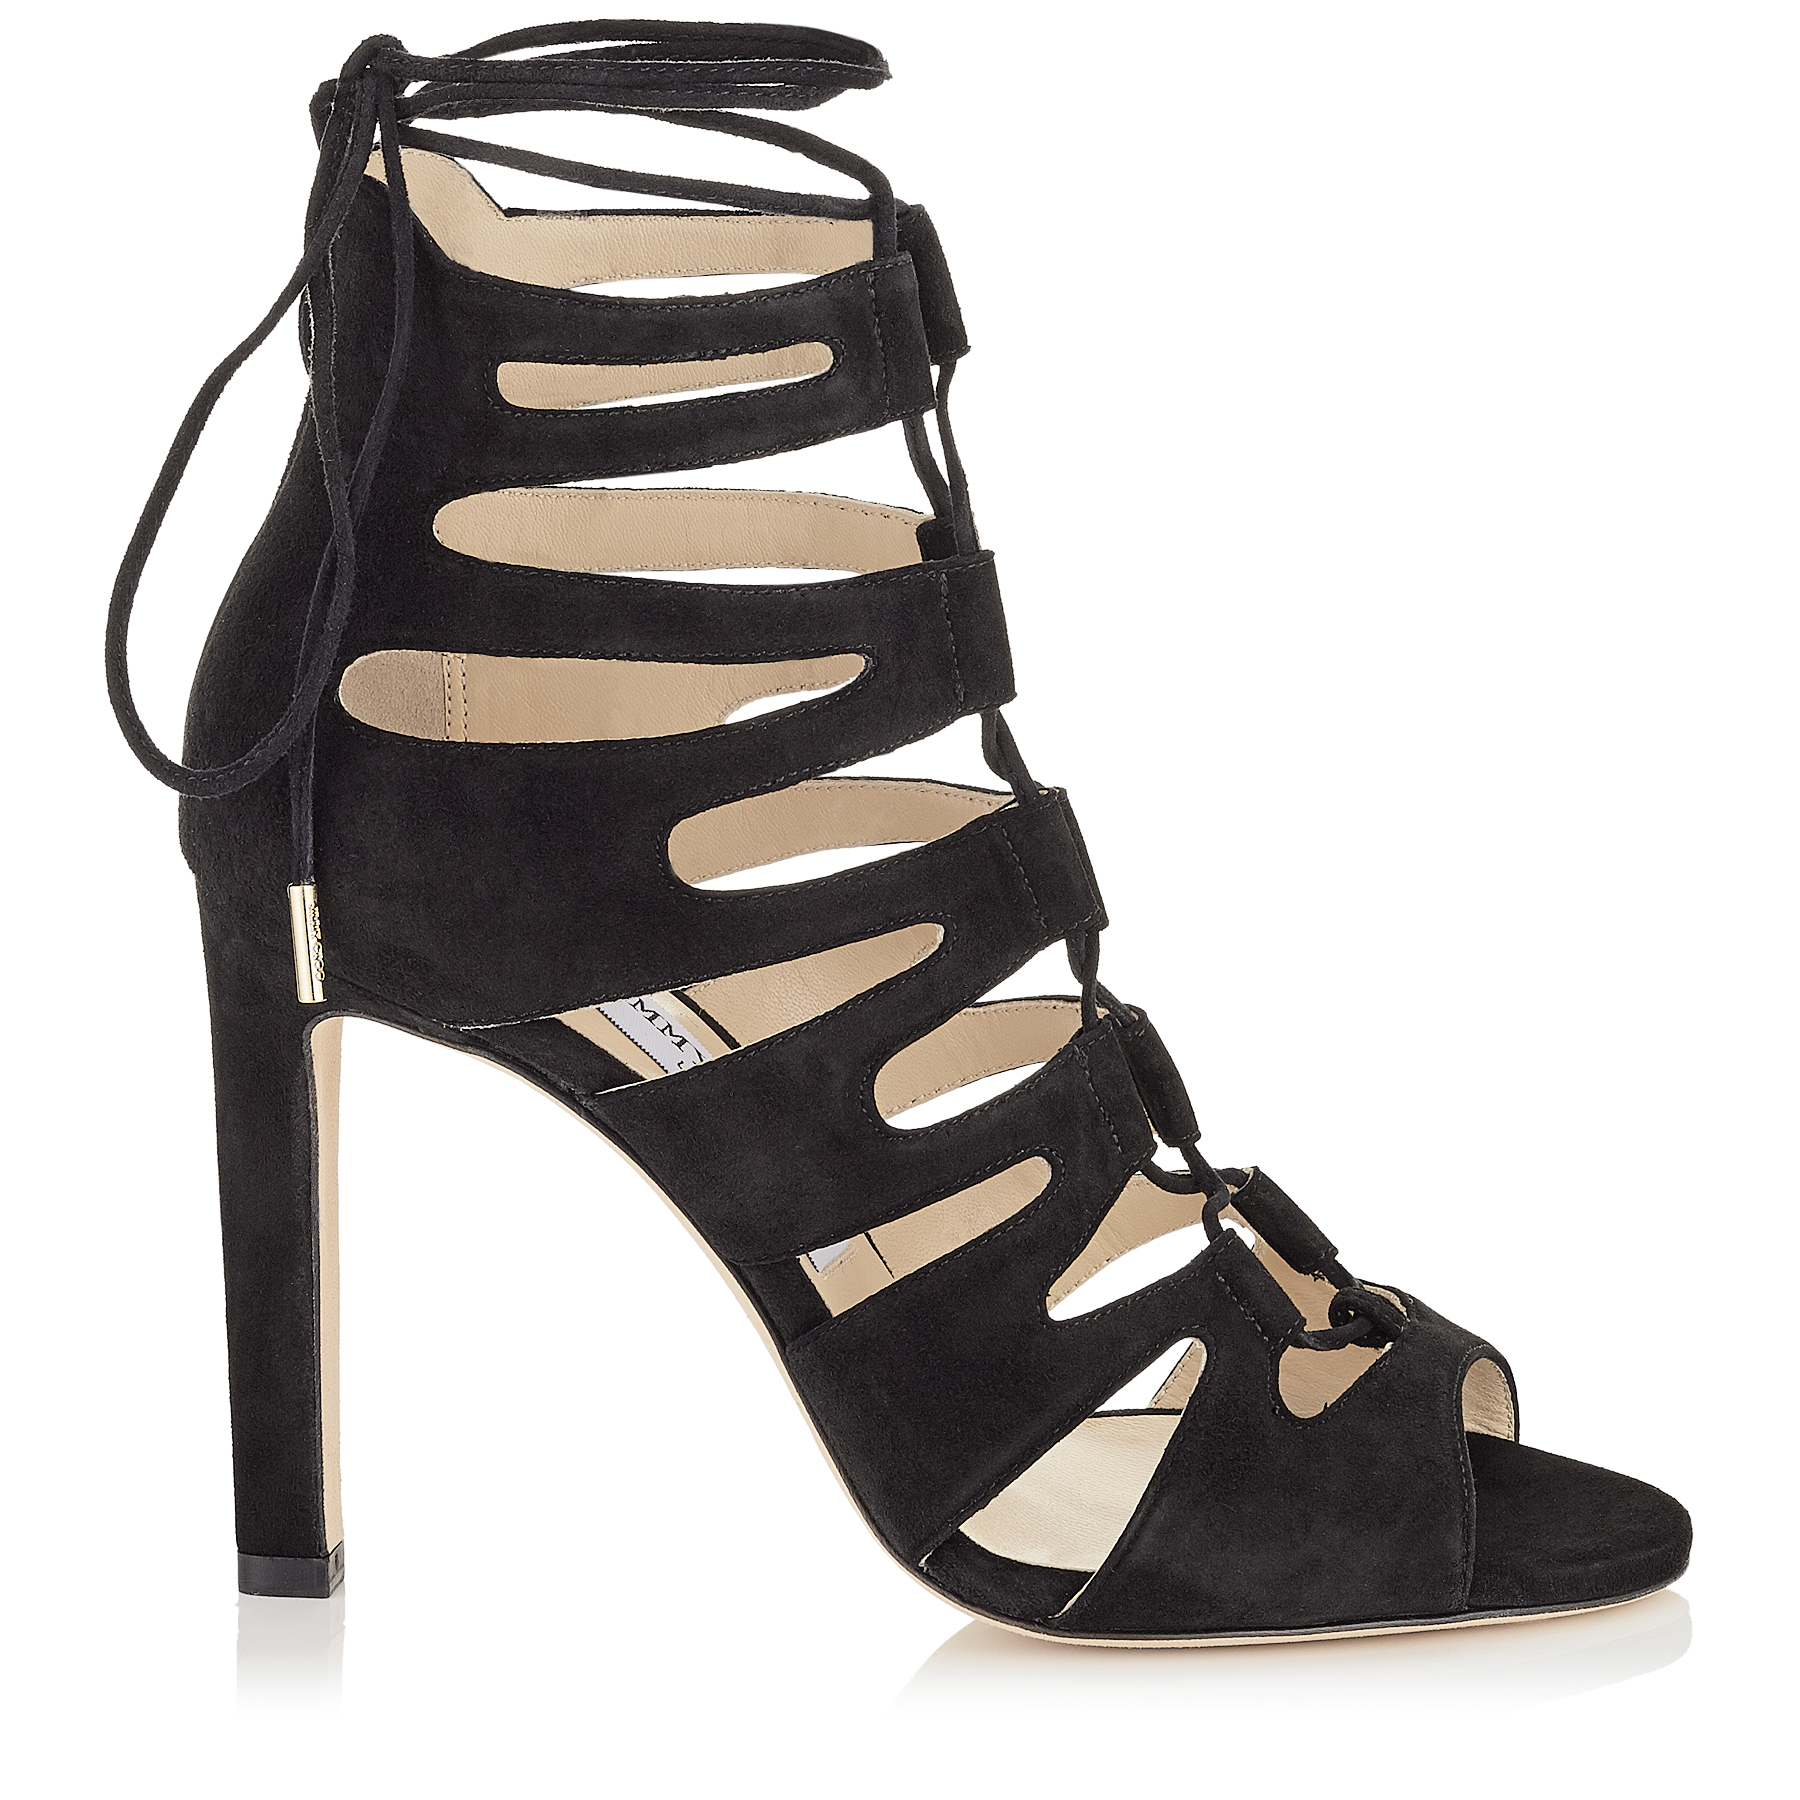 jimmy choo female hitch 100 black suede strappy sandals